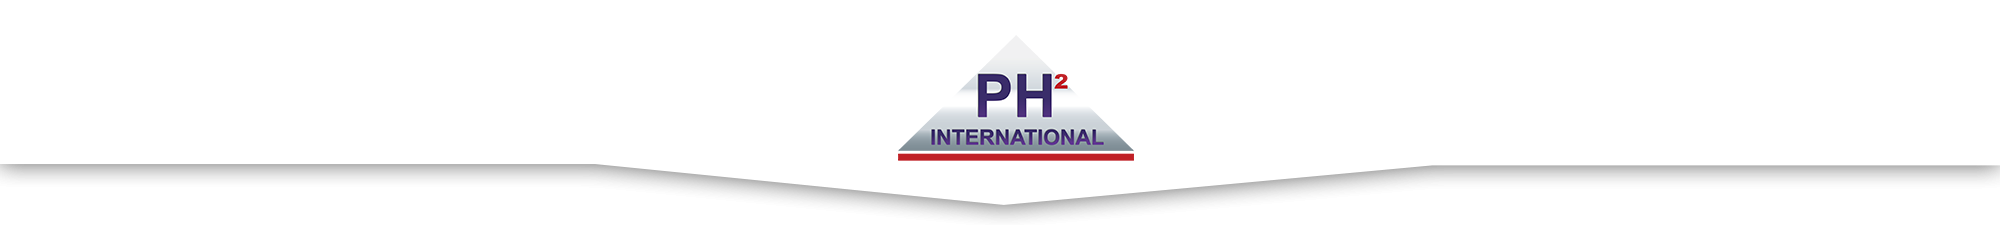 Logo - PH² International